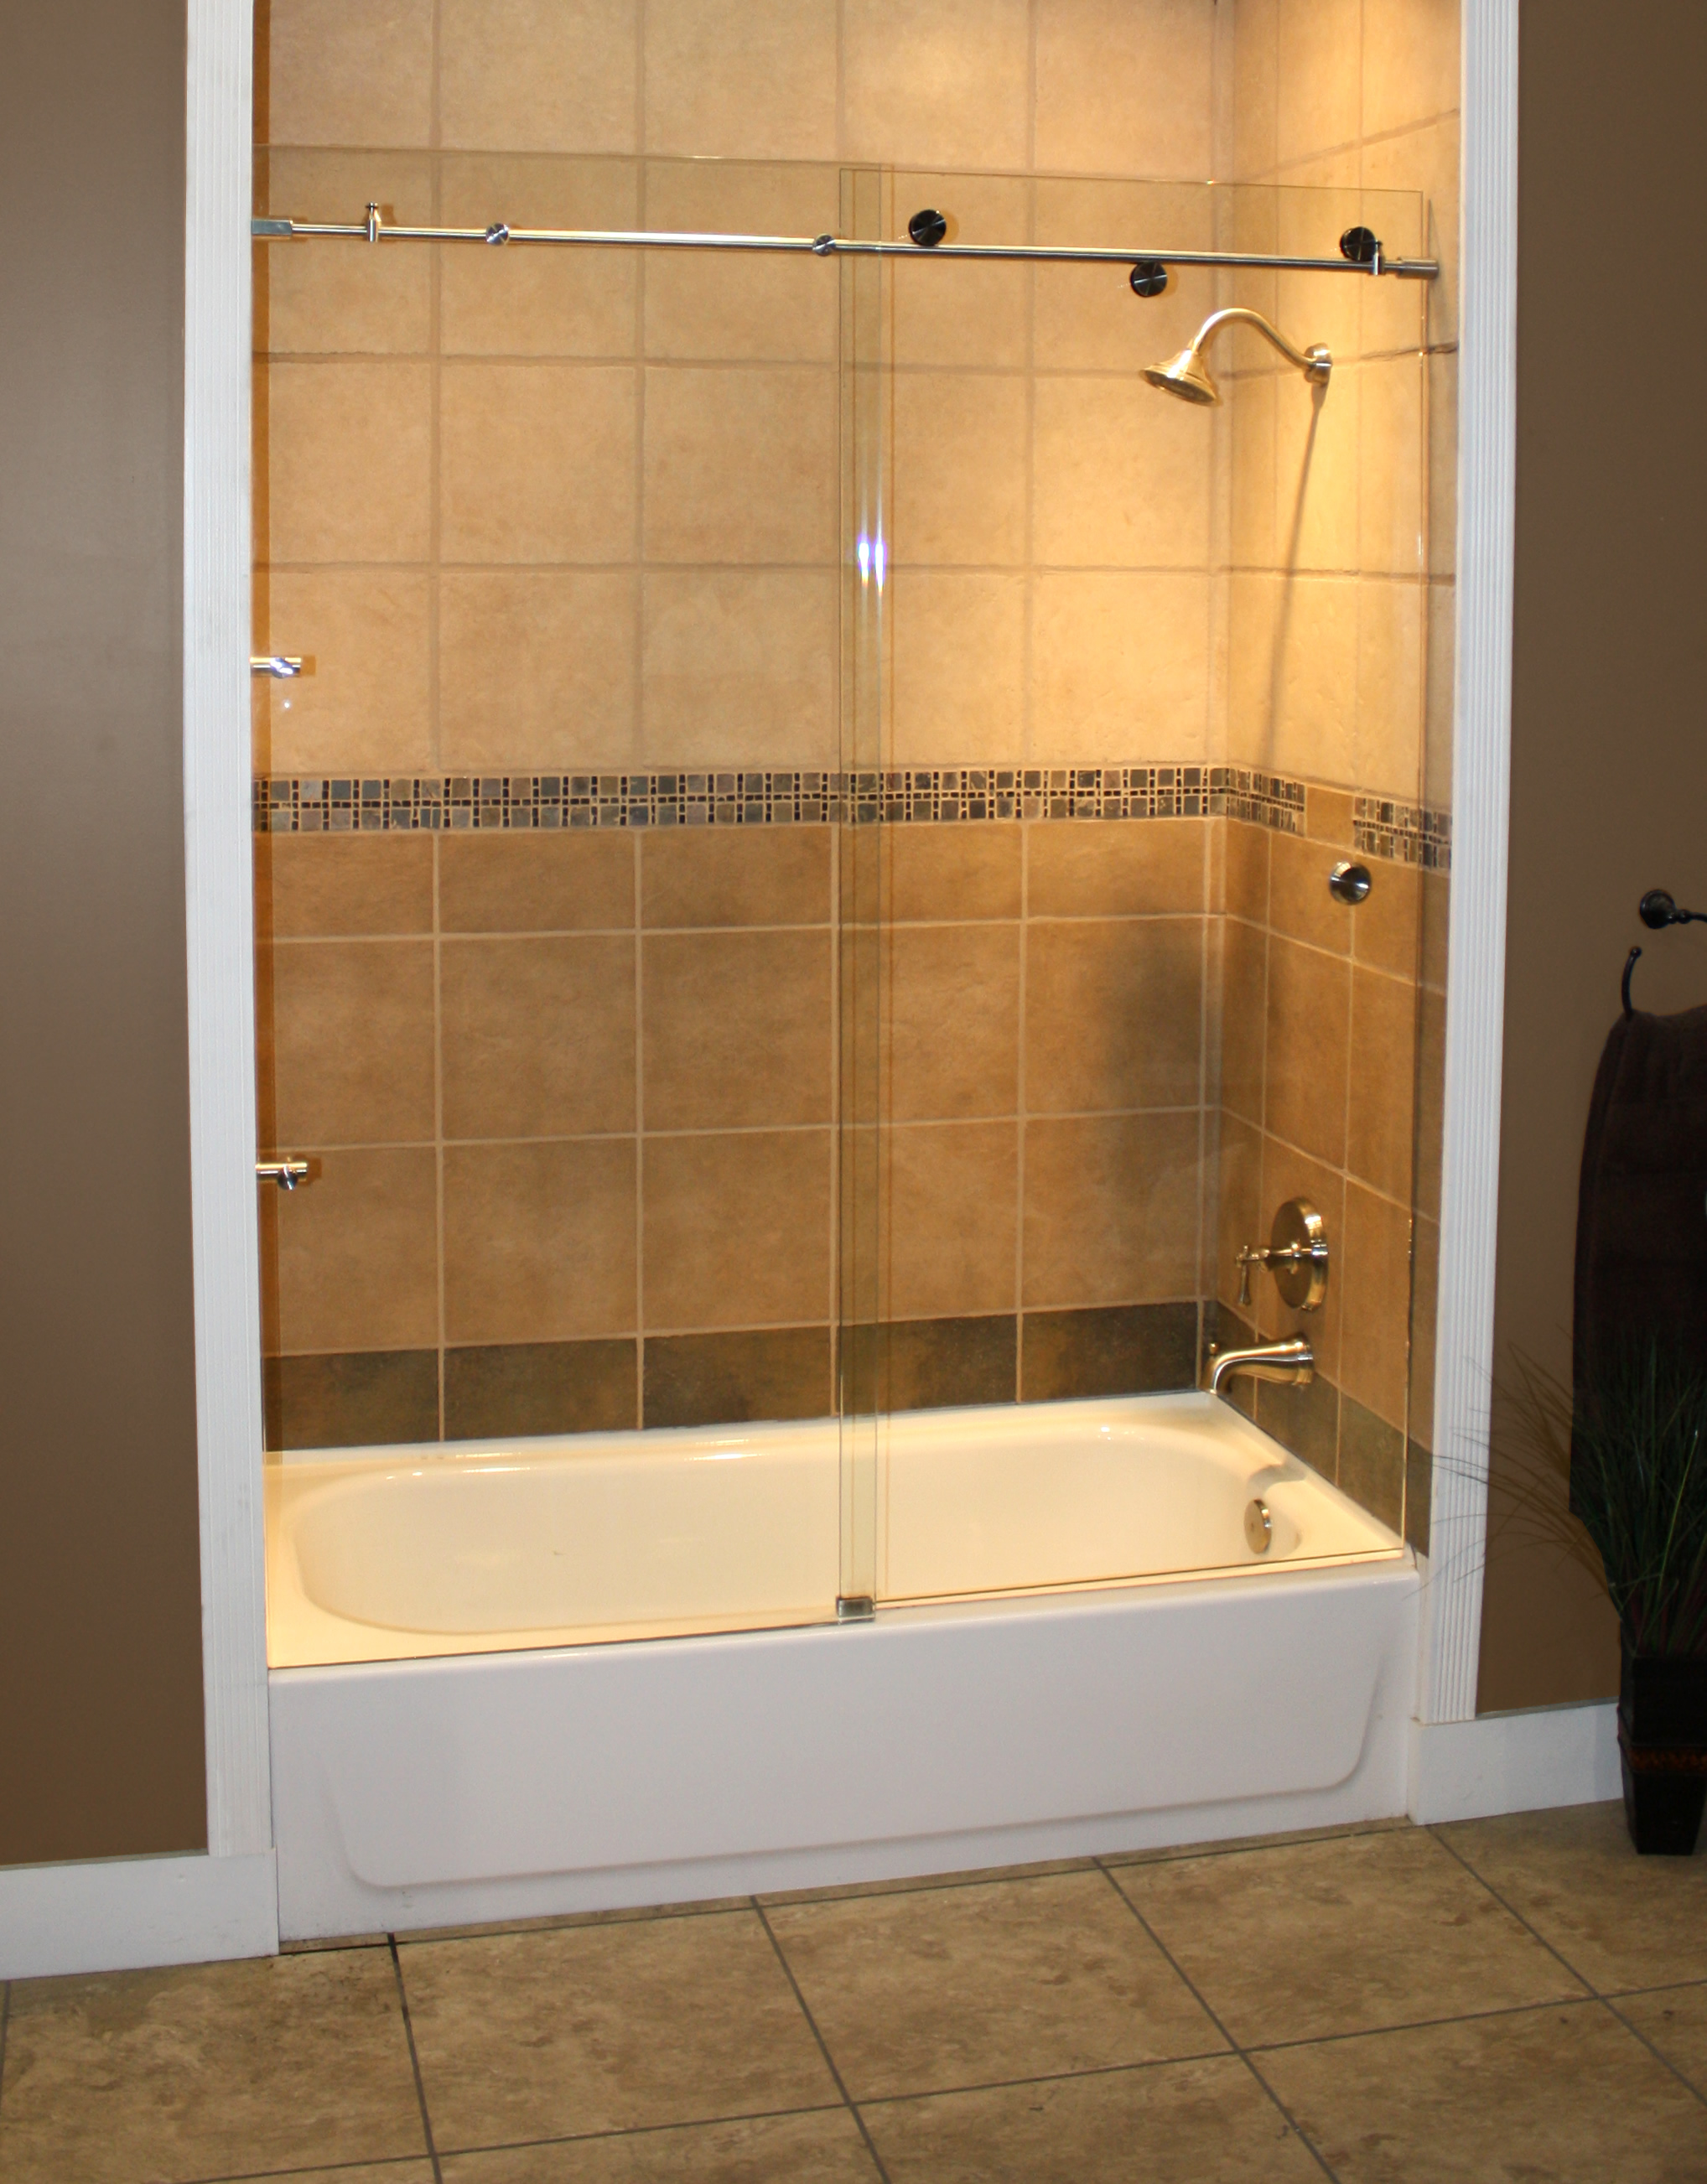 home depot showers awesome enclosures immaculate decoration design free online bath bathrooms shower for gallery decor bathroom creative ideas